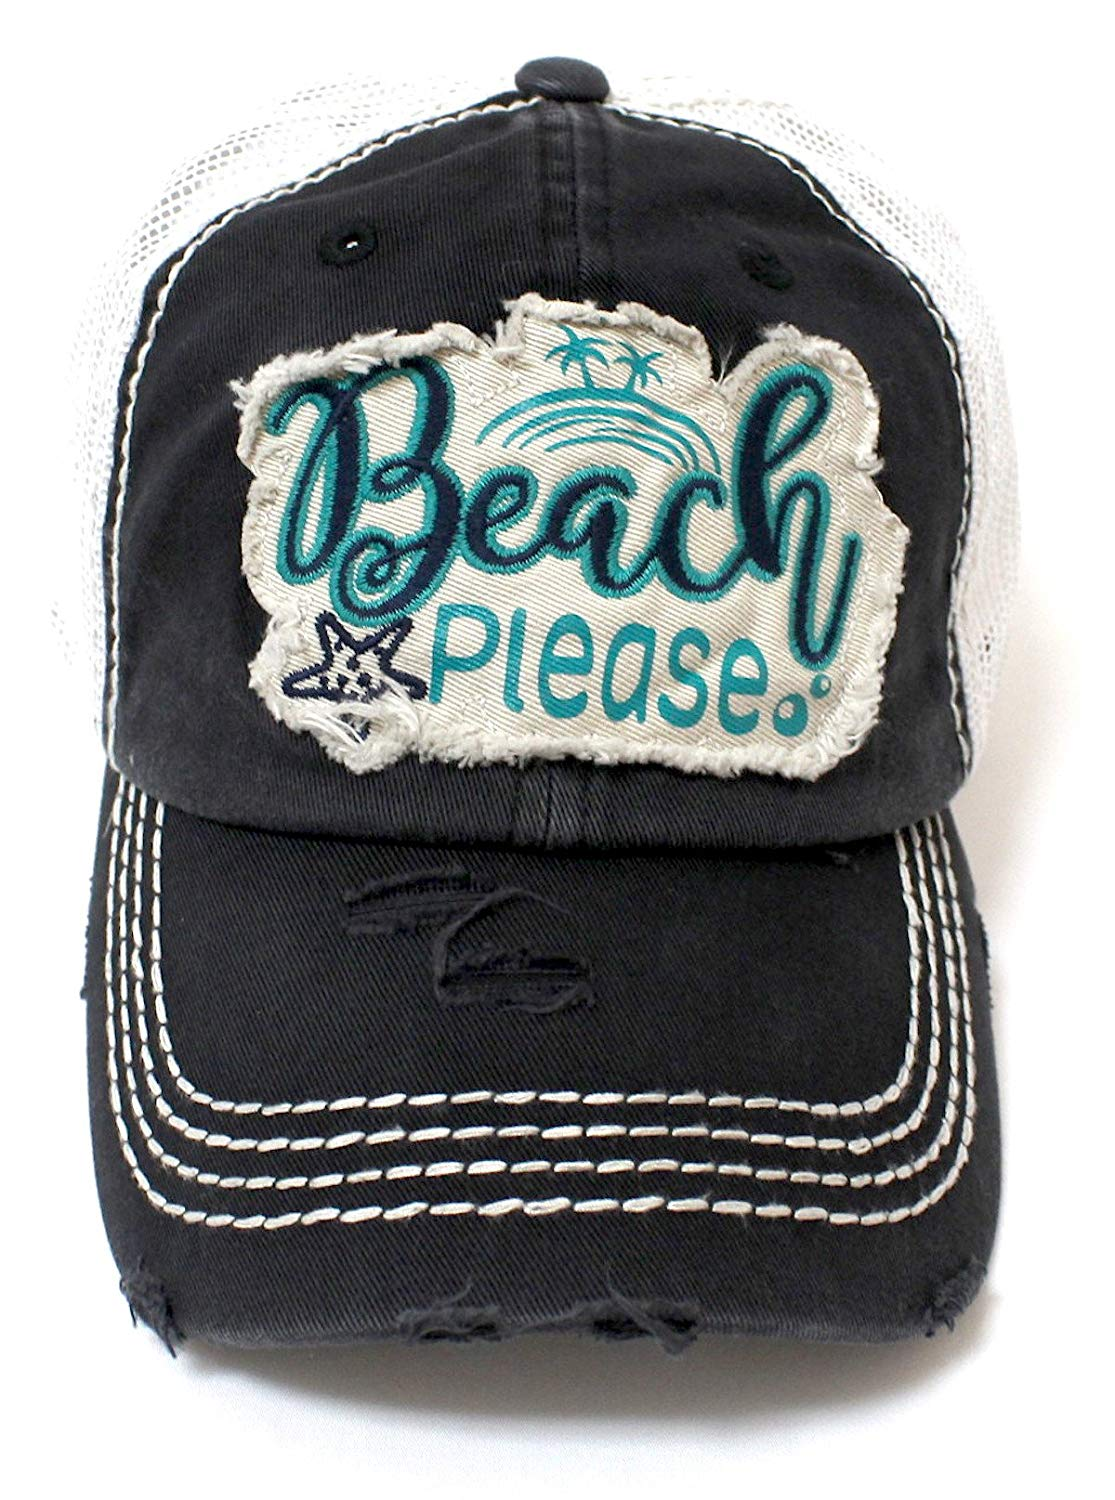 NEW!! Ocean Surf Beach Please Patch Embroidery Meshback Hat - Caps 'N Vintage